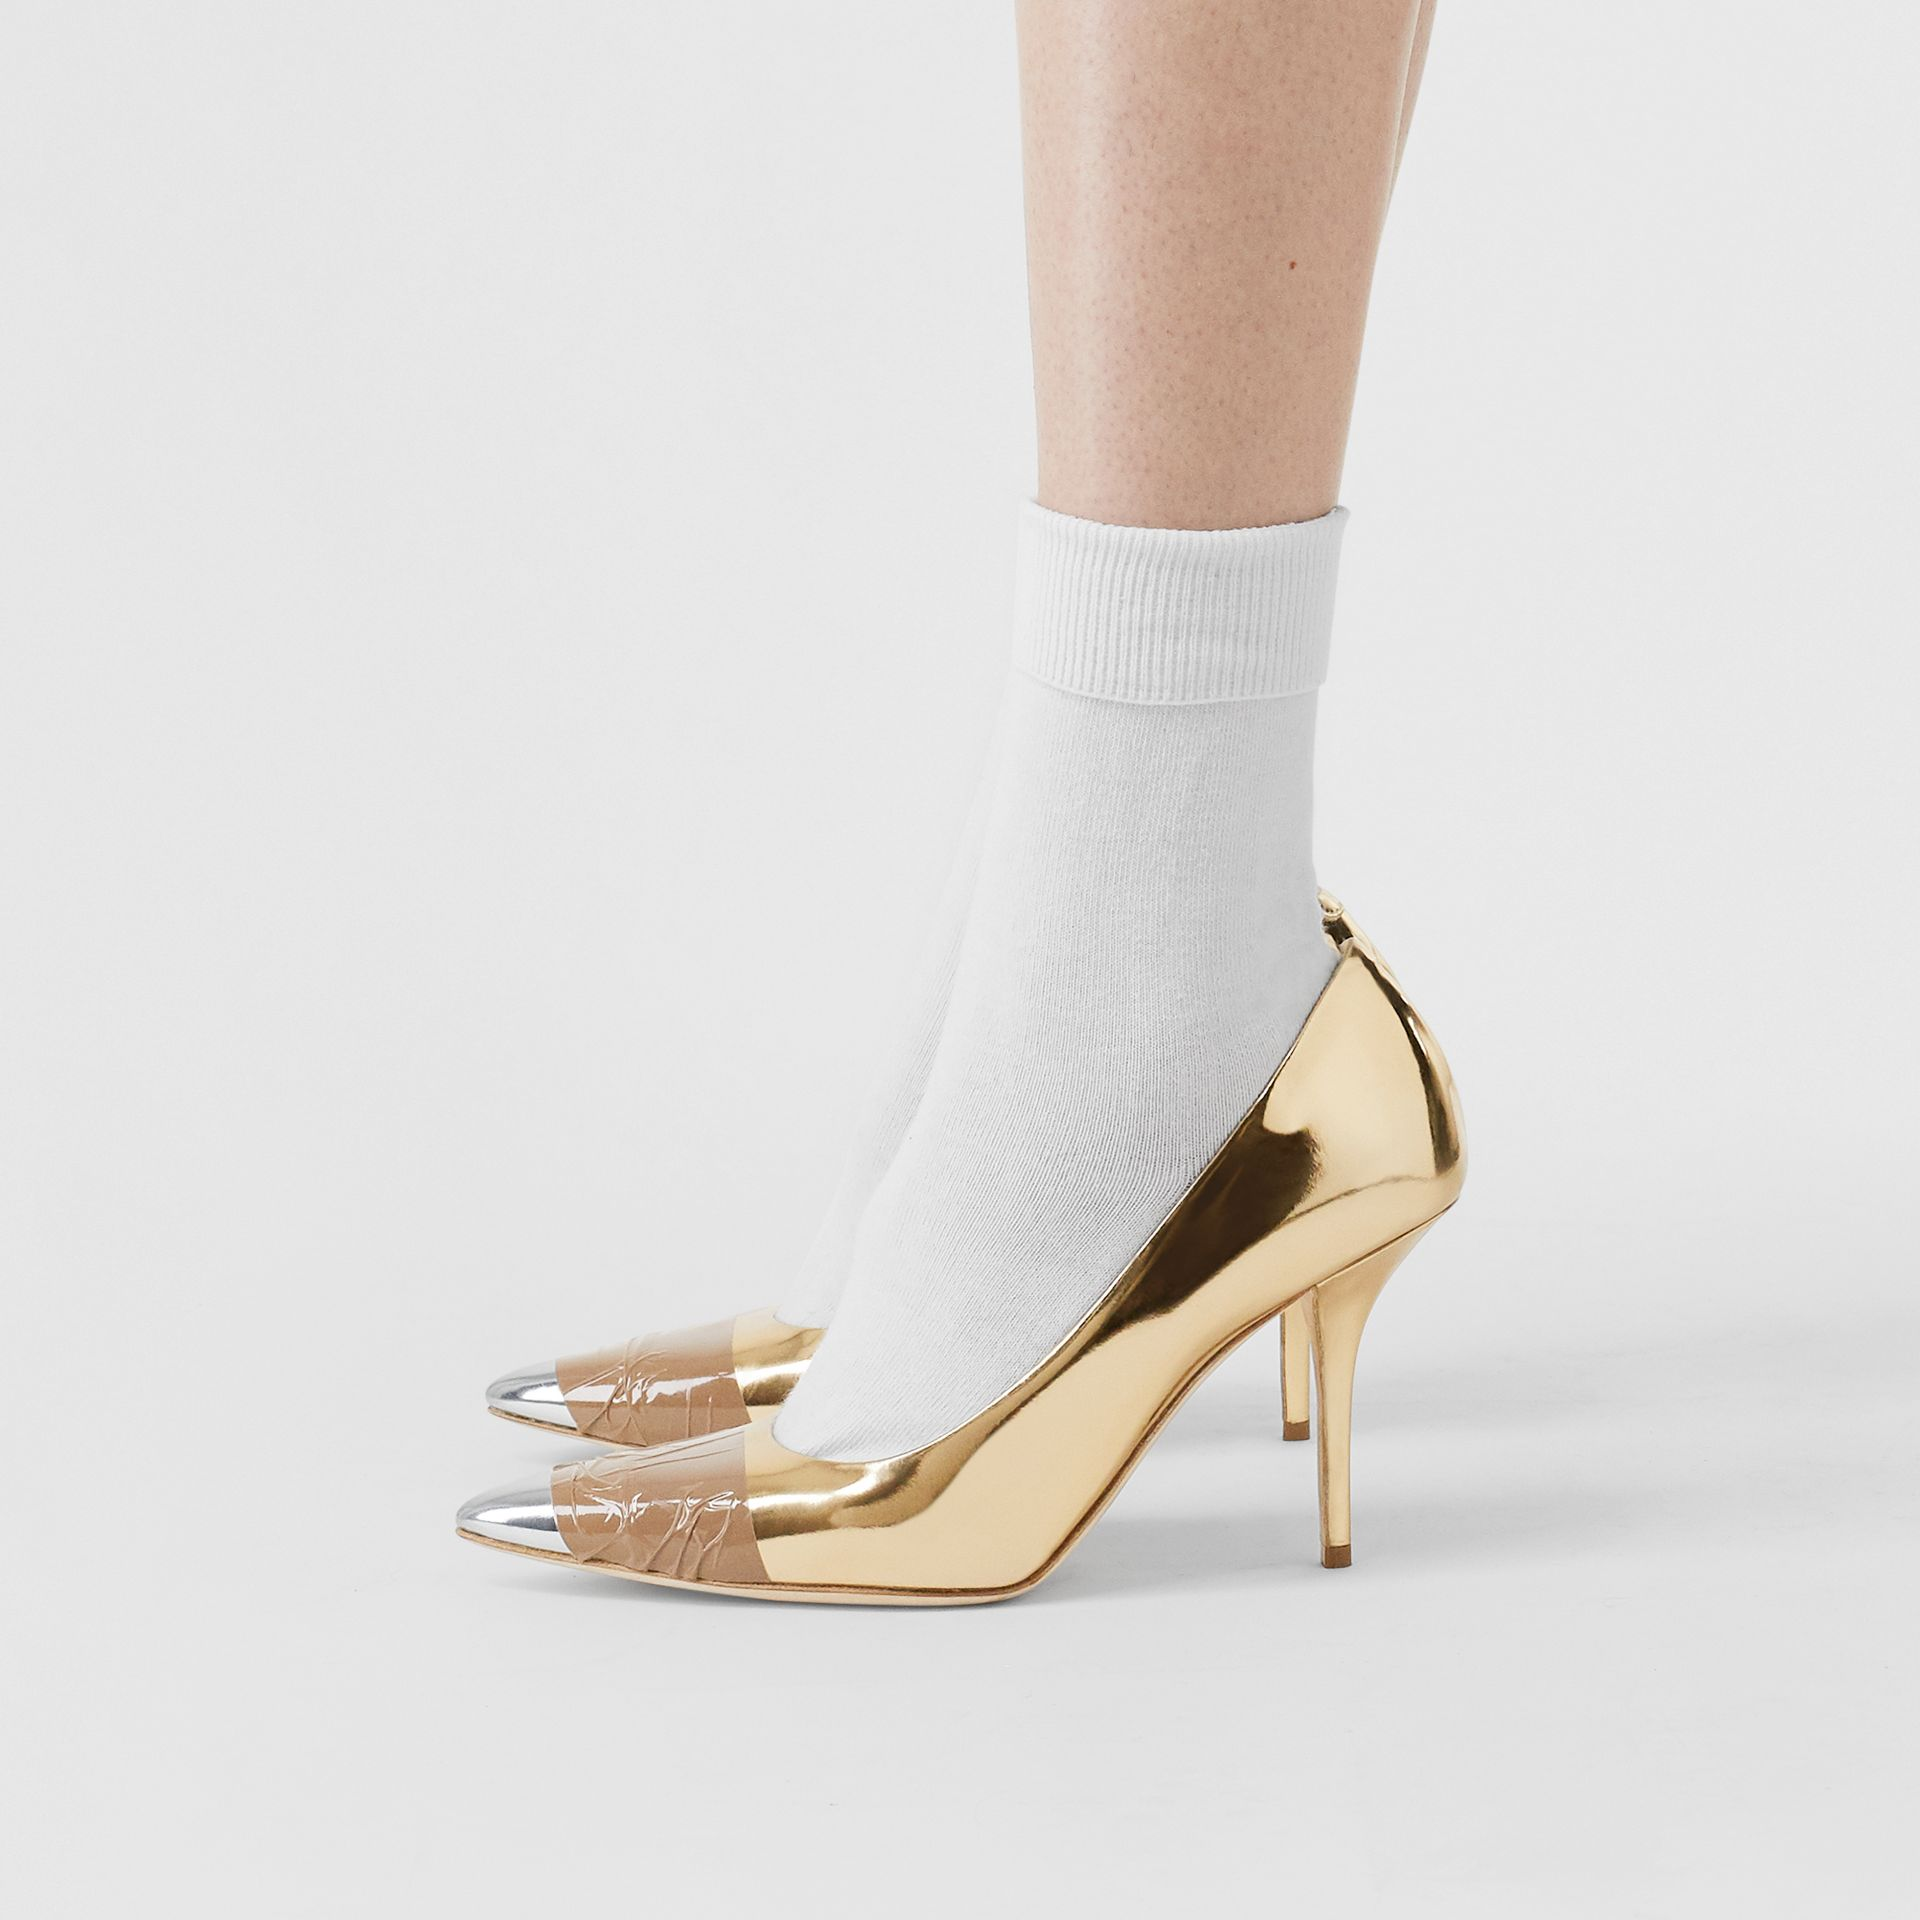 Tape Detail Mirrored Leather Pumps in Gold/silver - Women | Burberry Australia - gallery image 2